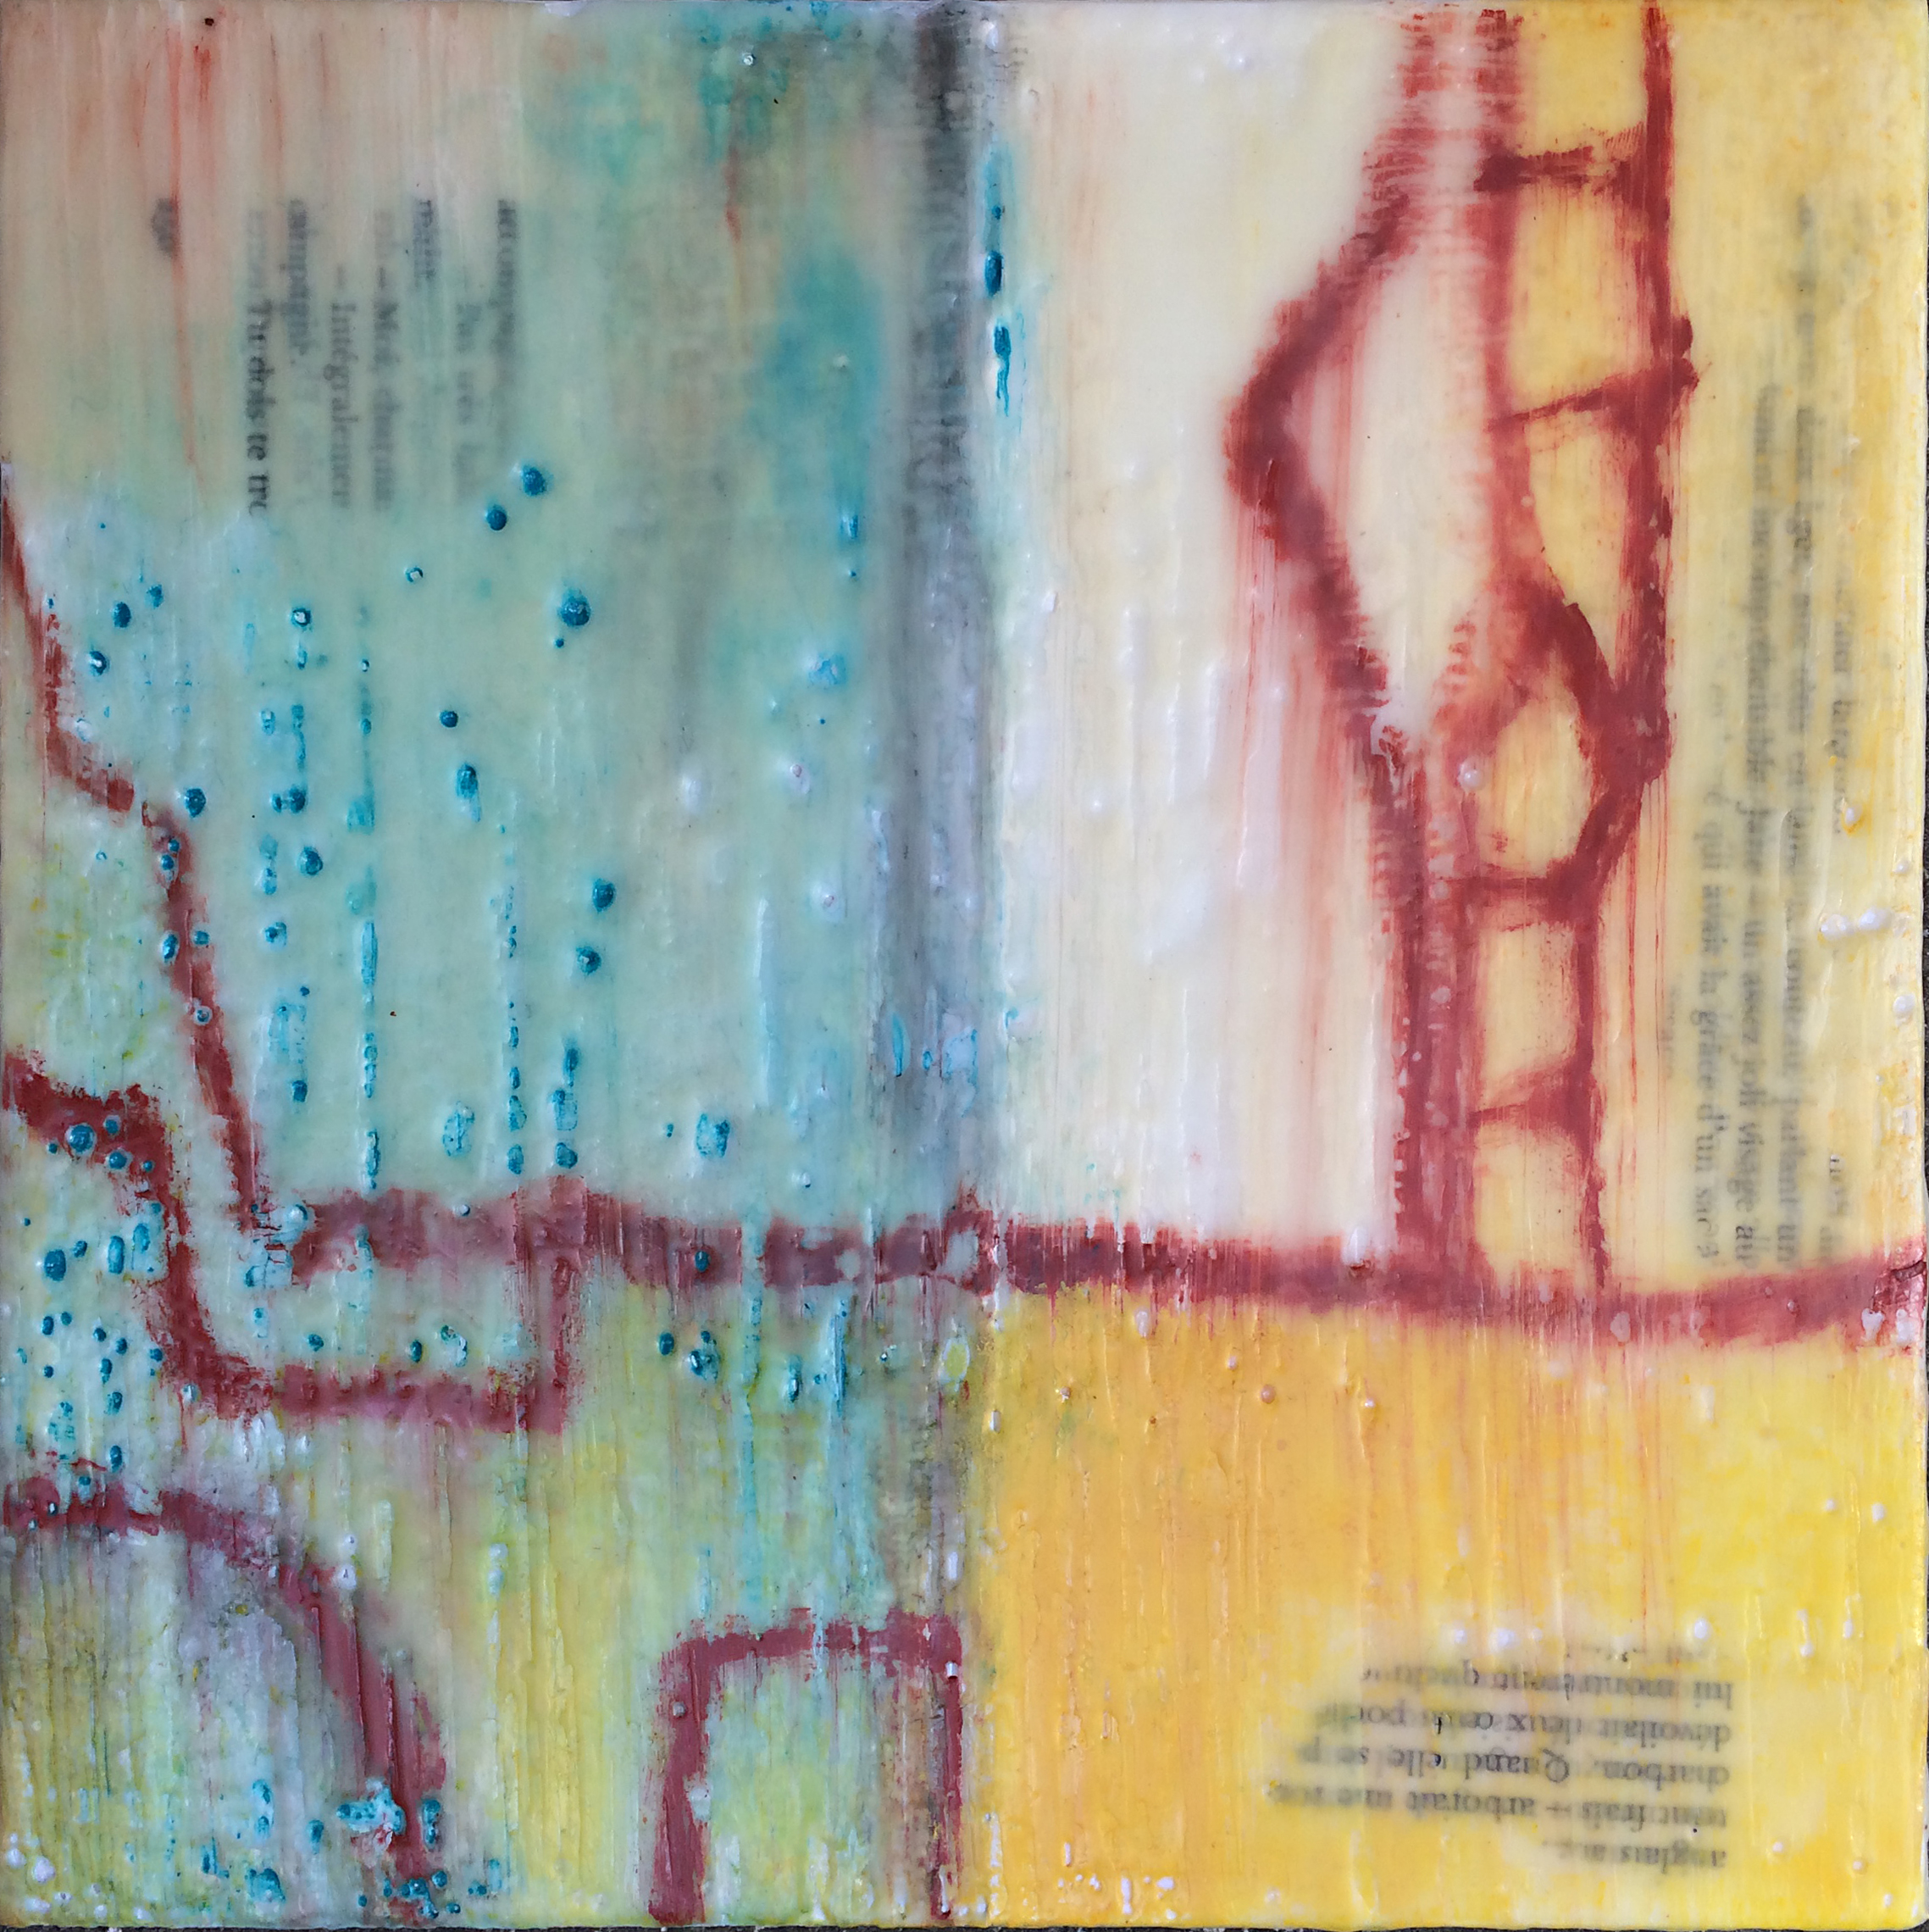 oil, beeswax and graphite  8 x 8 x 1.5 birchwood panel   S O L D